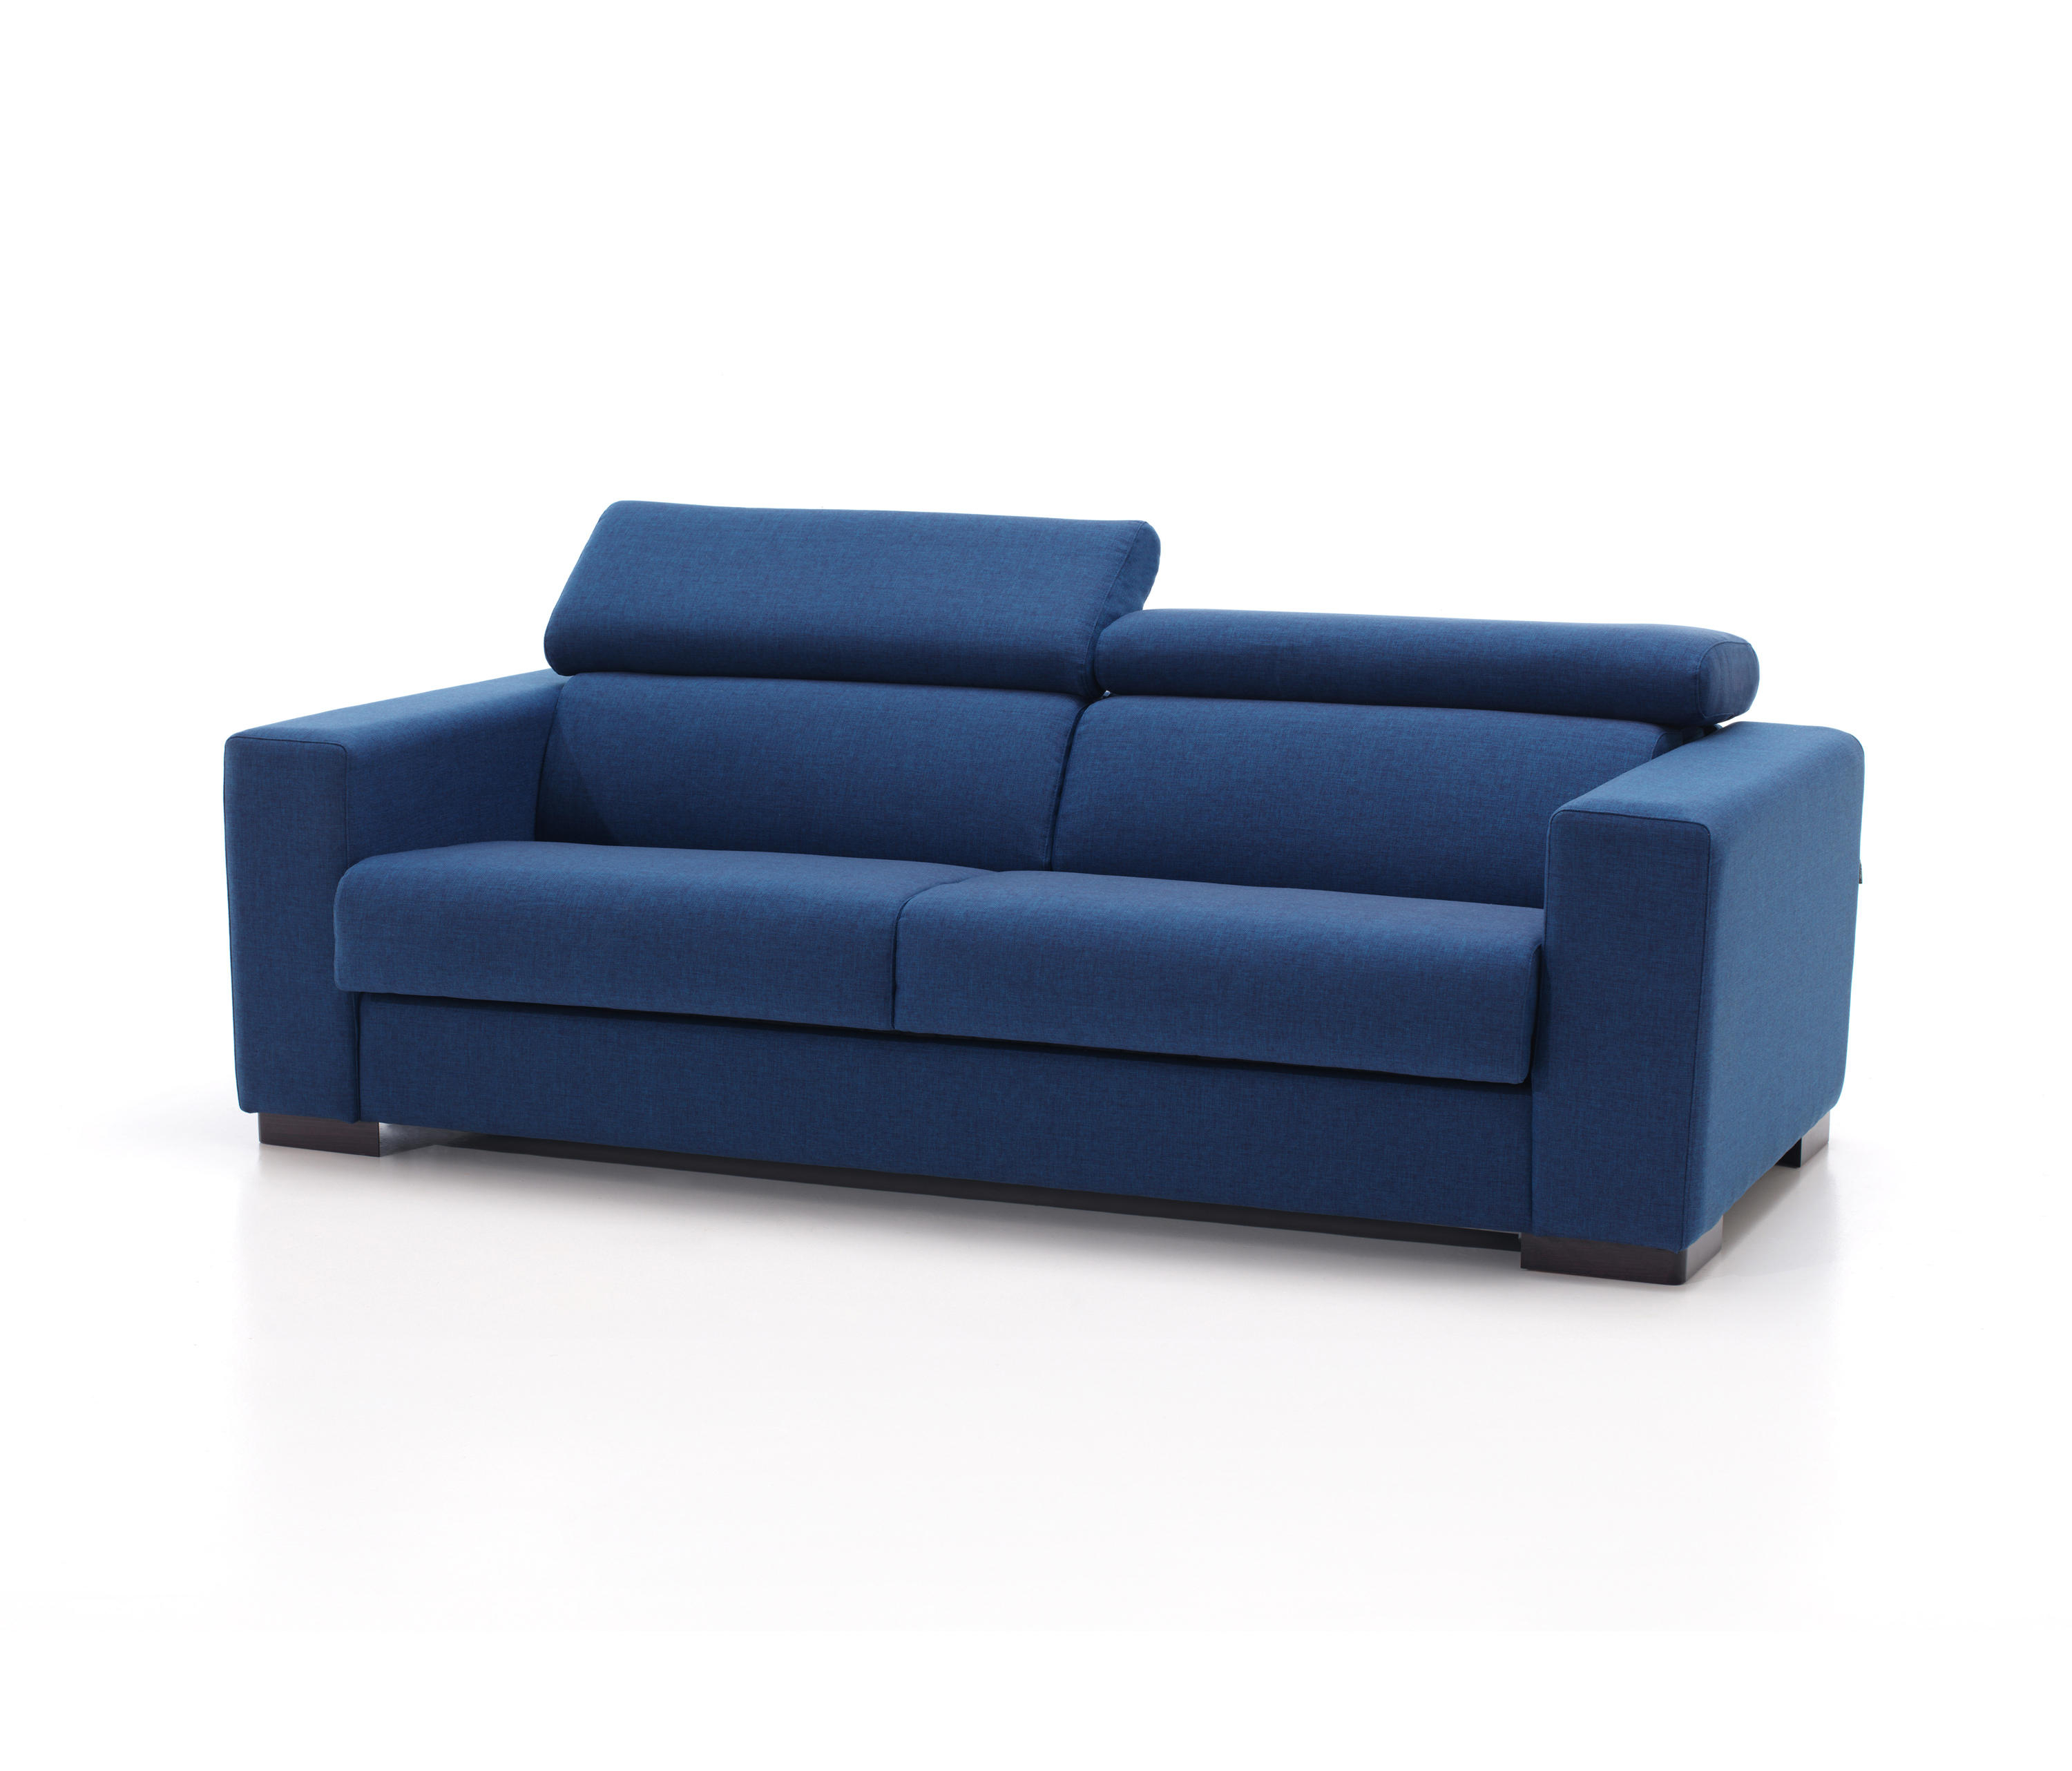 Cona – Sofas From Belta & Frajumar | Architonic Within Gina Blue Leather Sofa Chairs (View 18 of 25)